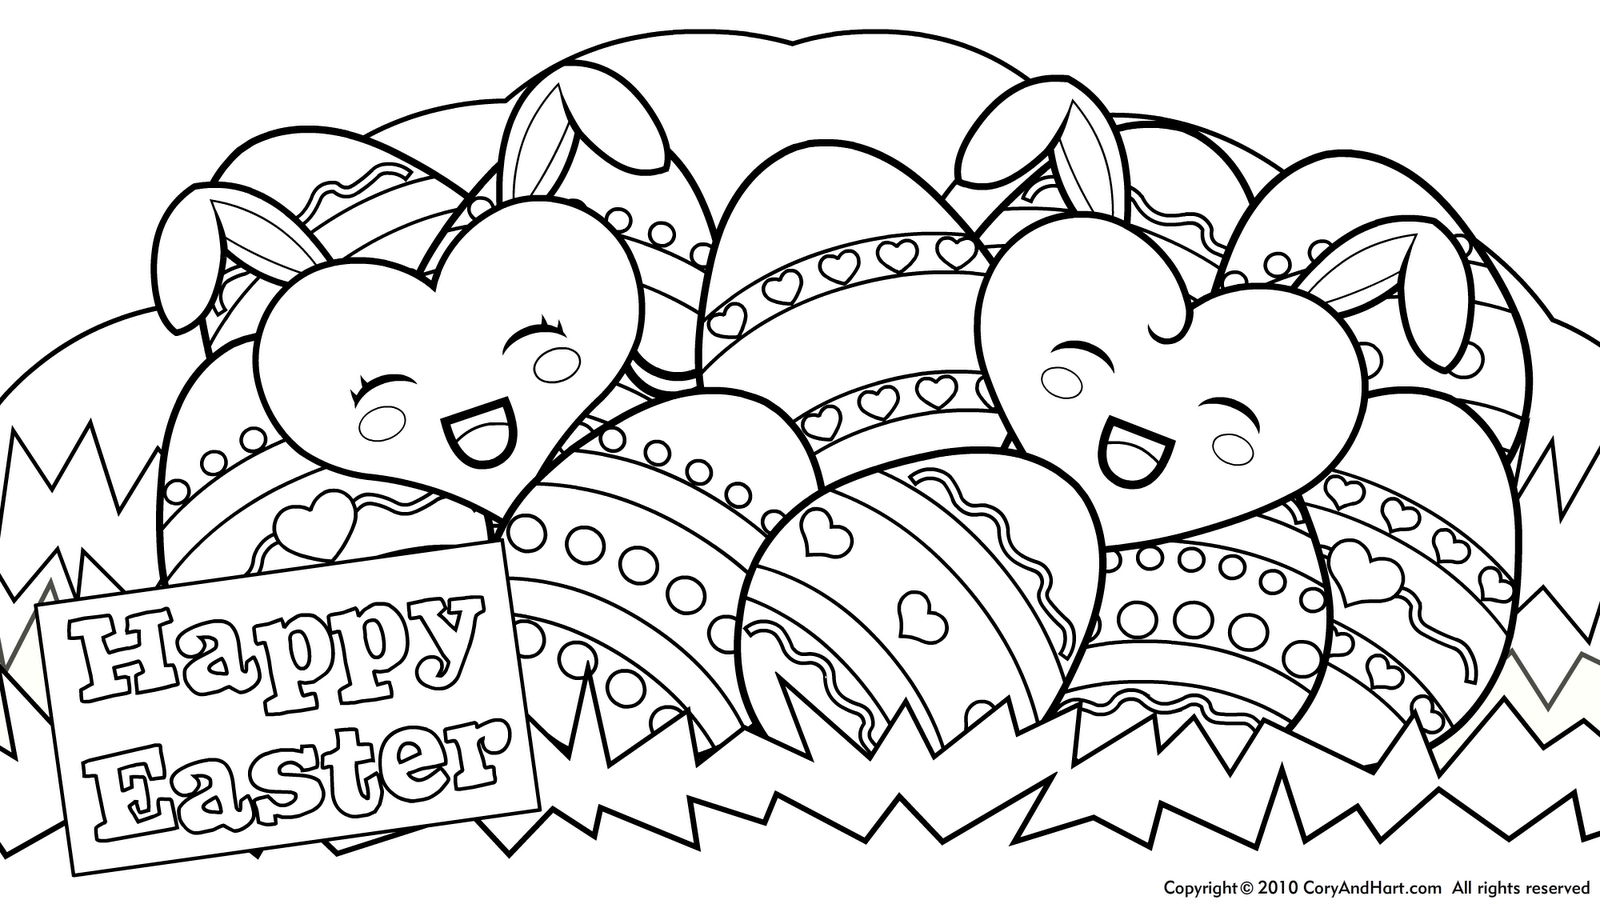 Coloring Pages To Print Easter : Cute easter coloring pages gt disney